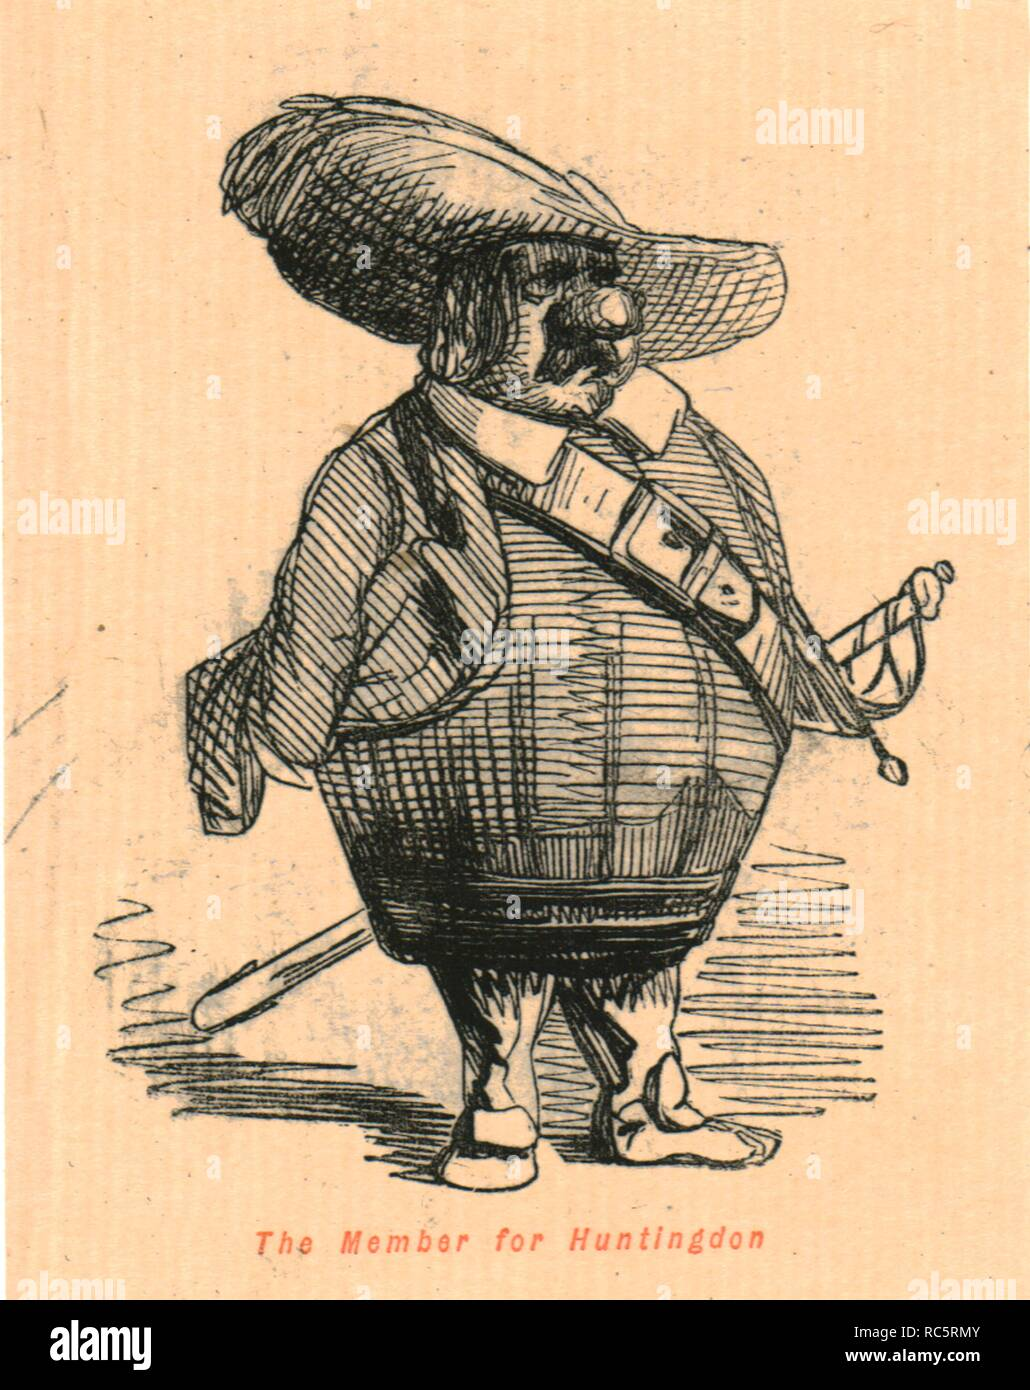 """'The Member for Huntingdon', 1897. Caricature of Oliver Cromwell (1599-1658) who was elected Member of Parliament for Huntingdon in Cambridgeshire in 1628. He is depicted in the shape of a barrel, with a bulbous nose. From """"The Comic History of England"""" by Gilbert Abbott A Beckett, with satirical illustrations by John Leech. [Bradbury, Agnew & Co, London, 1897] - Stock Image"""